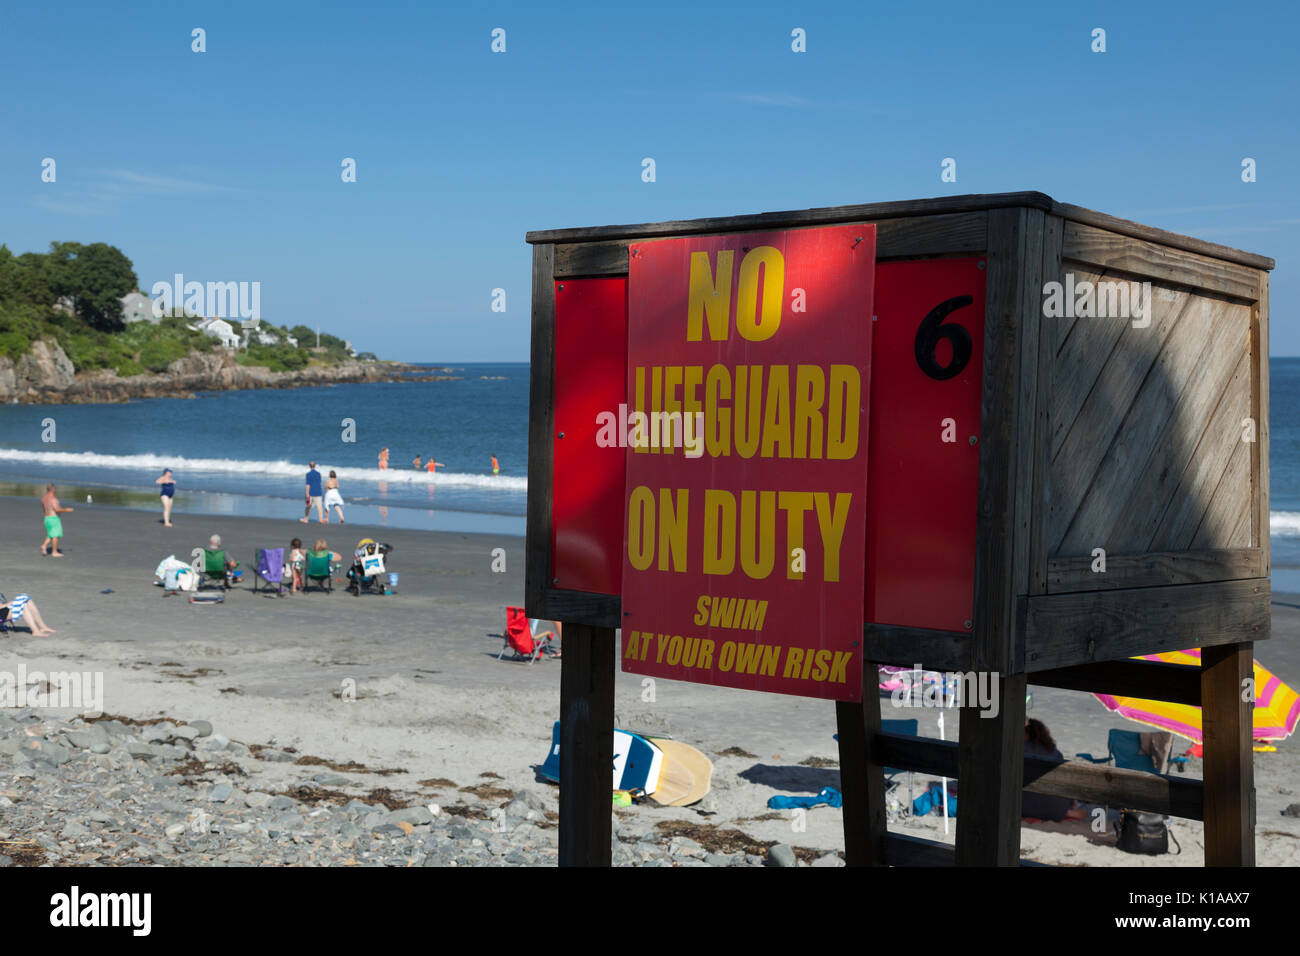 No lifeguard sign at York Harbor Beach, York, Maine - Stock Image